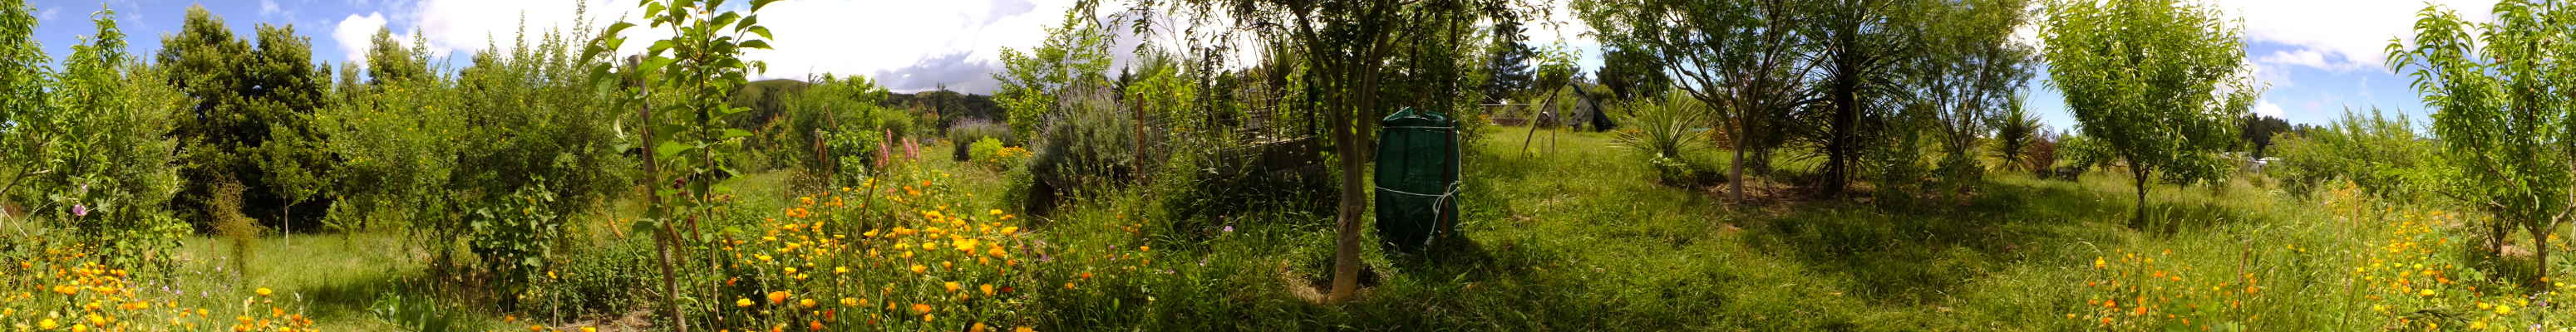 3 years old food forest